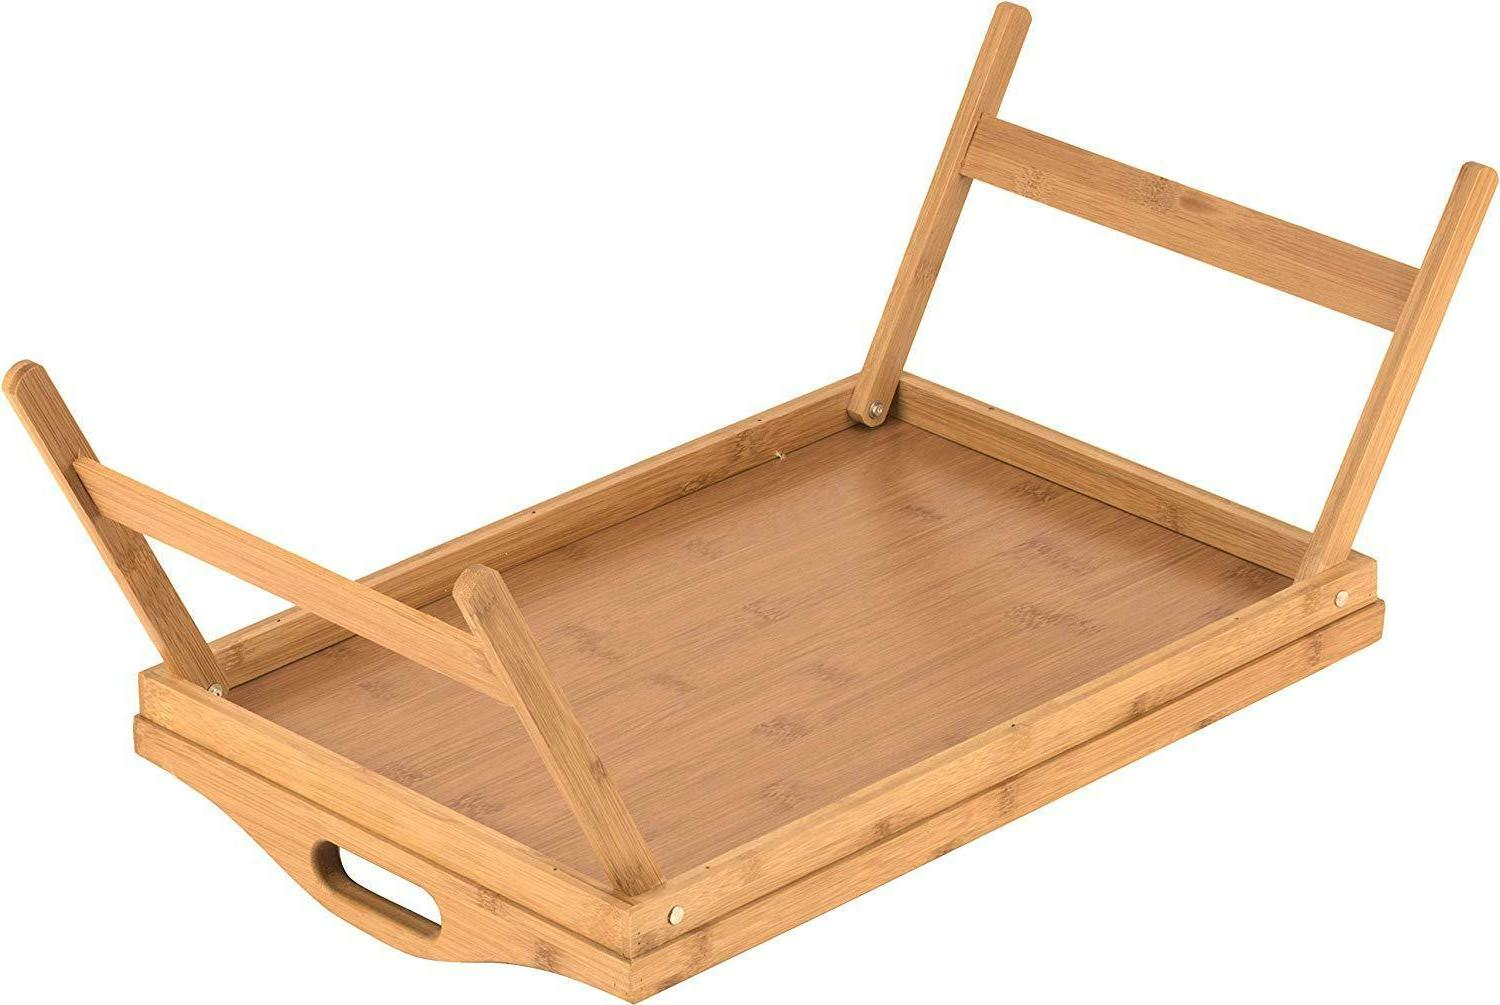 Bed Tray folding legs, tray Bamboo table bed